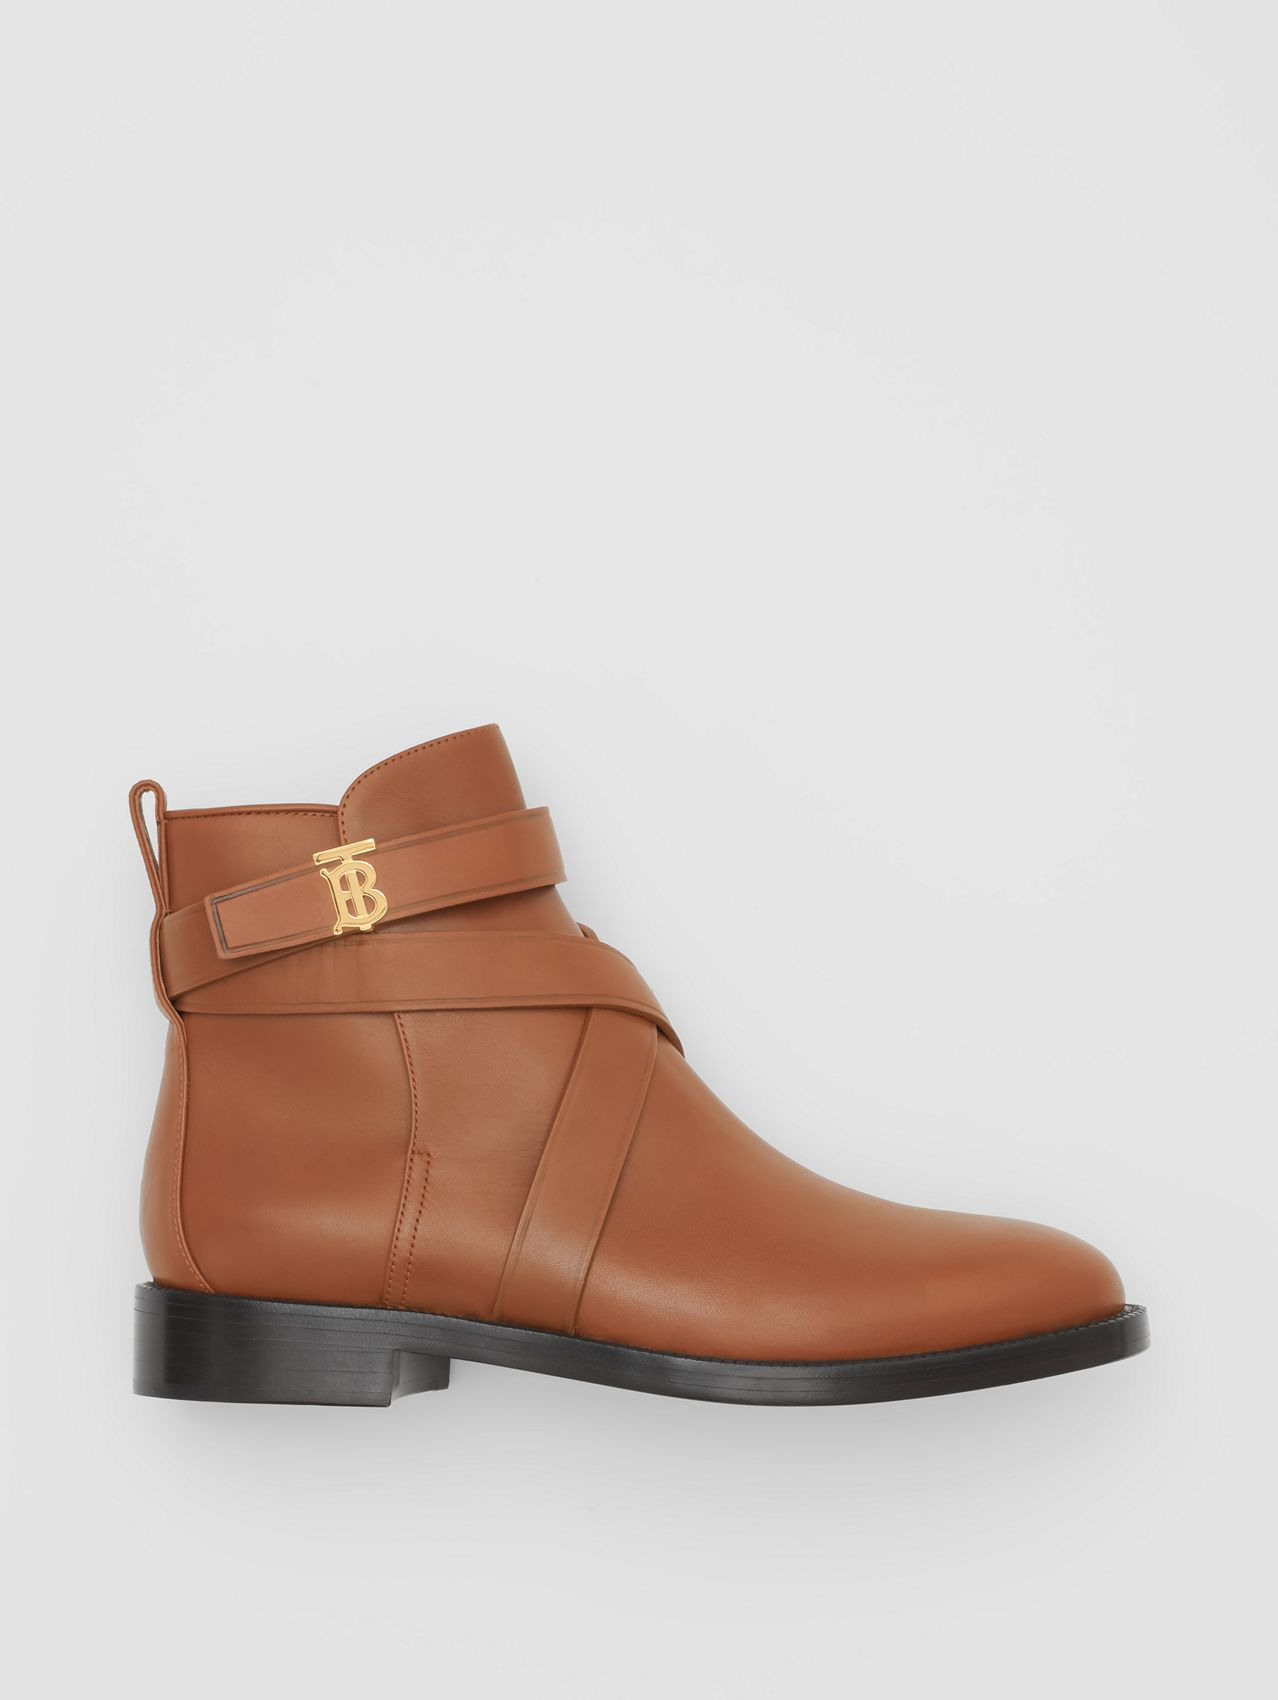 Monogram Motif Leather Ankle Boots (Tan)